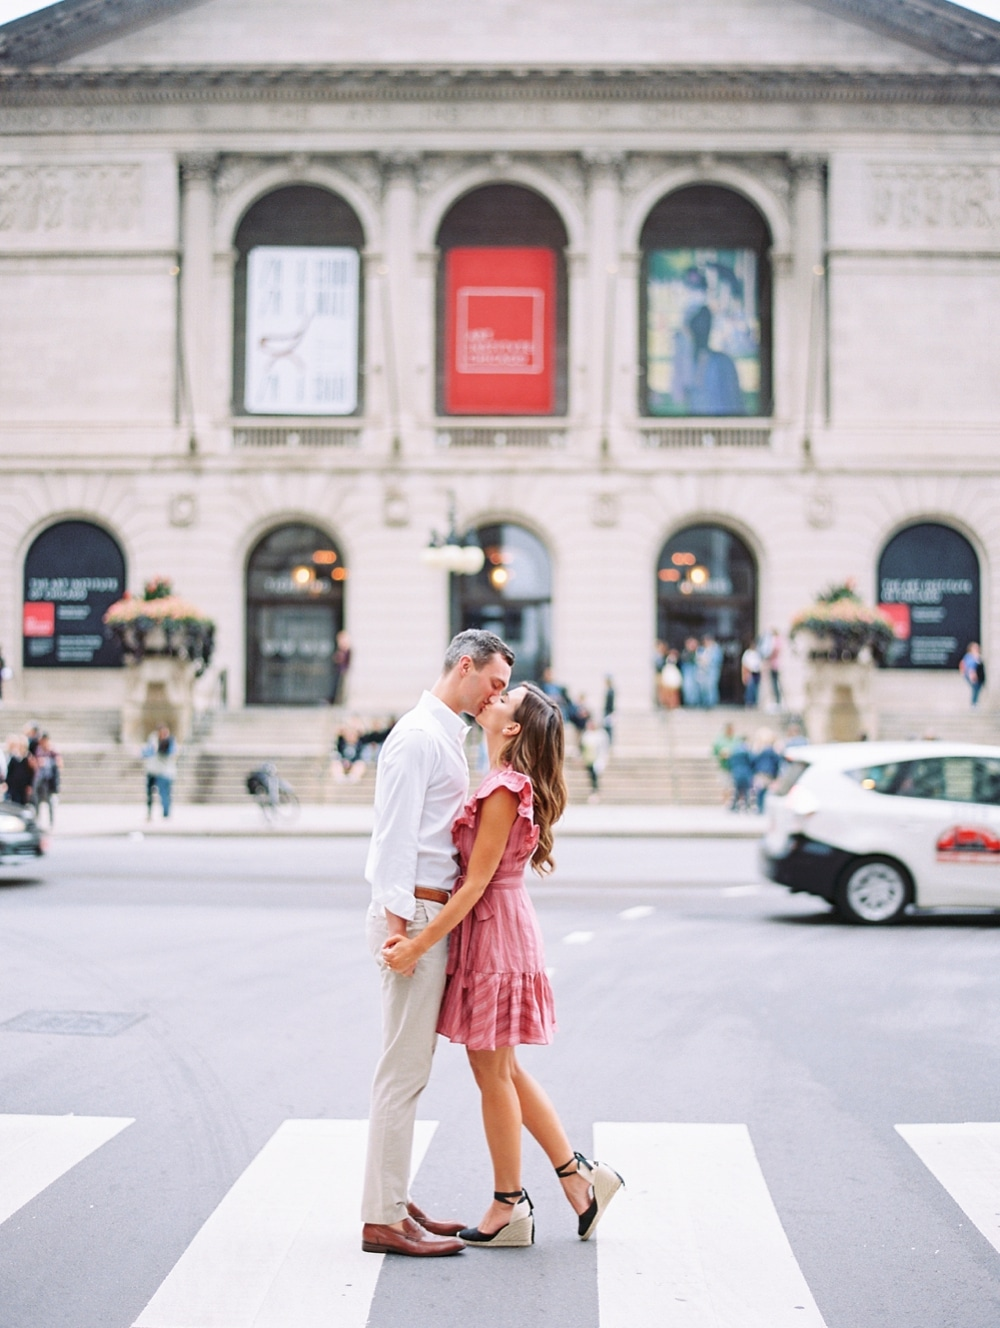 Kristin-La-Voie-Photography-chicago-art-institute-engagement-wedding-photos-47